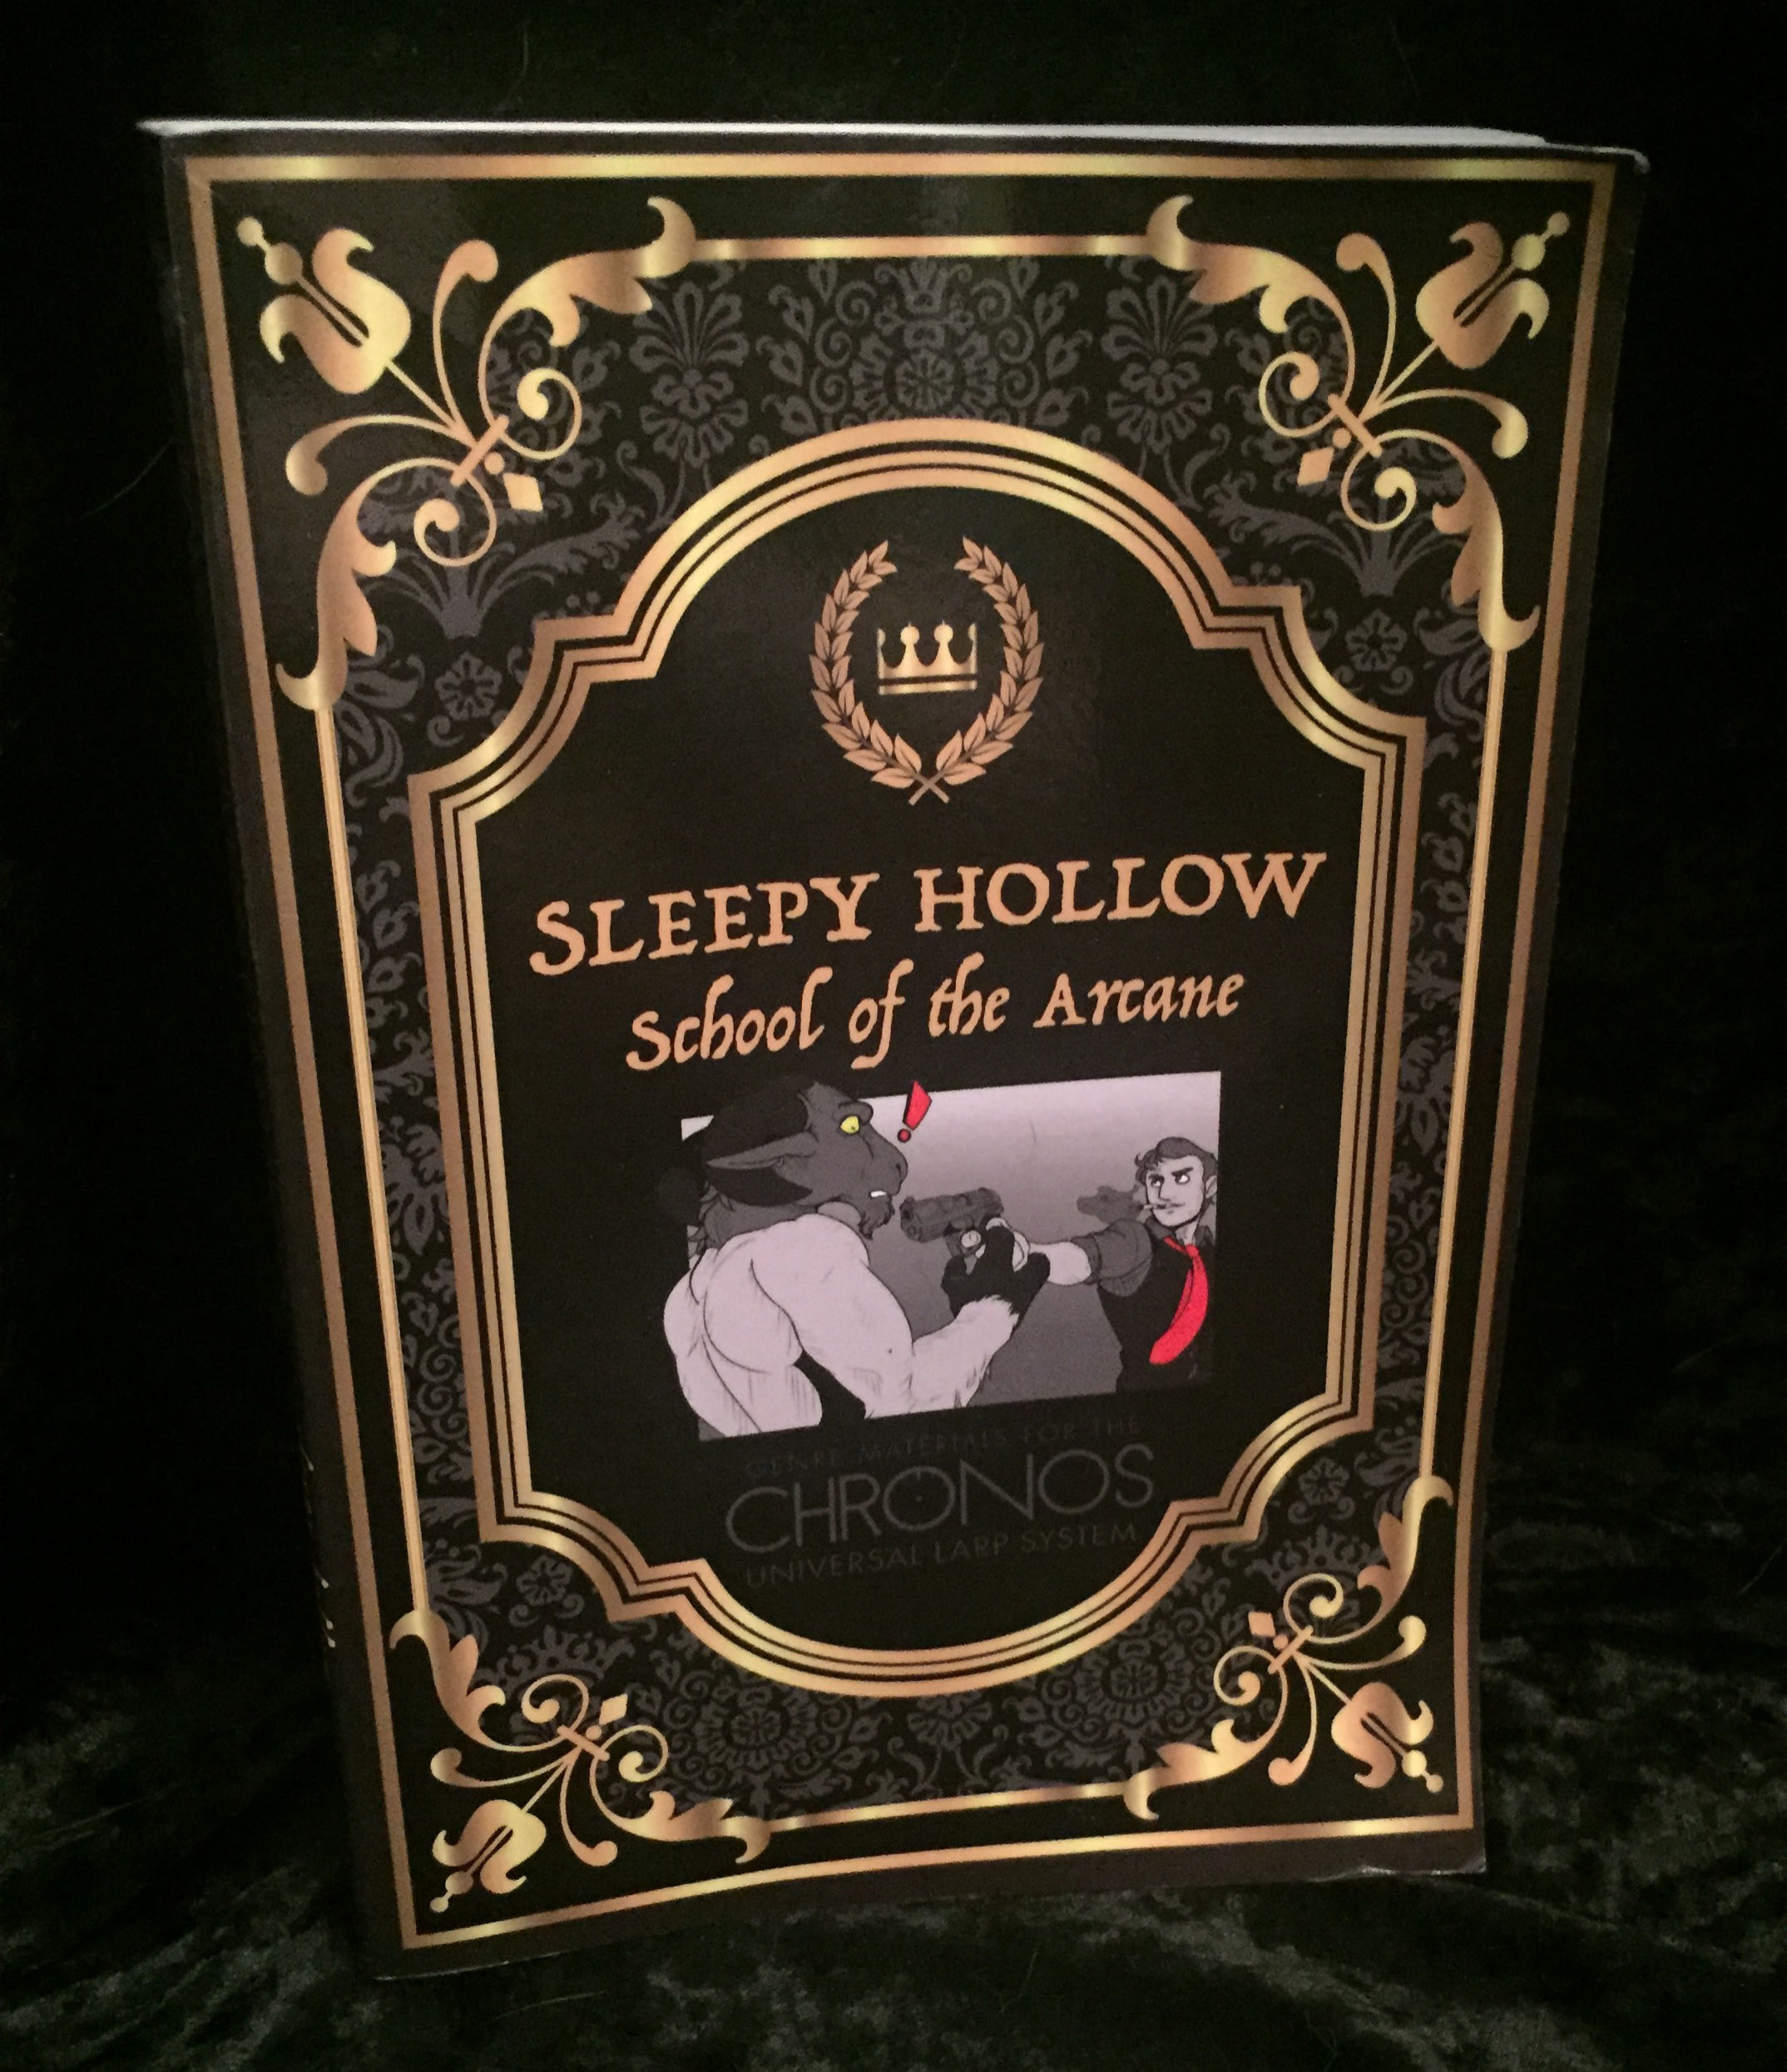 Sleepy Hollow: School of the Arcane Front Cover